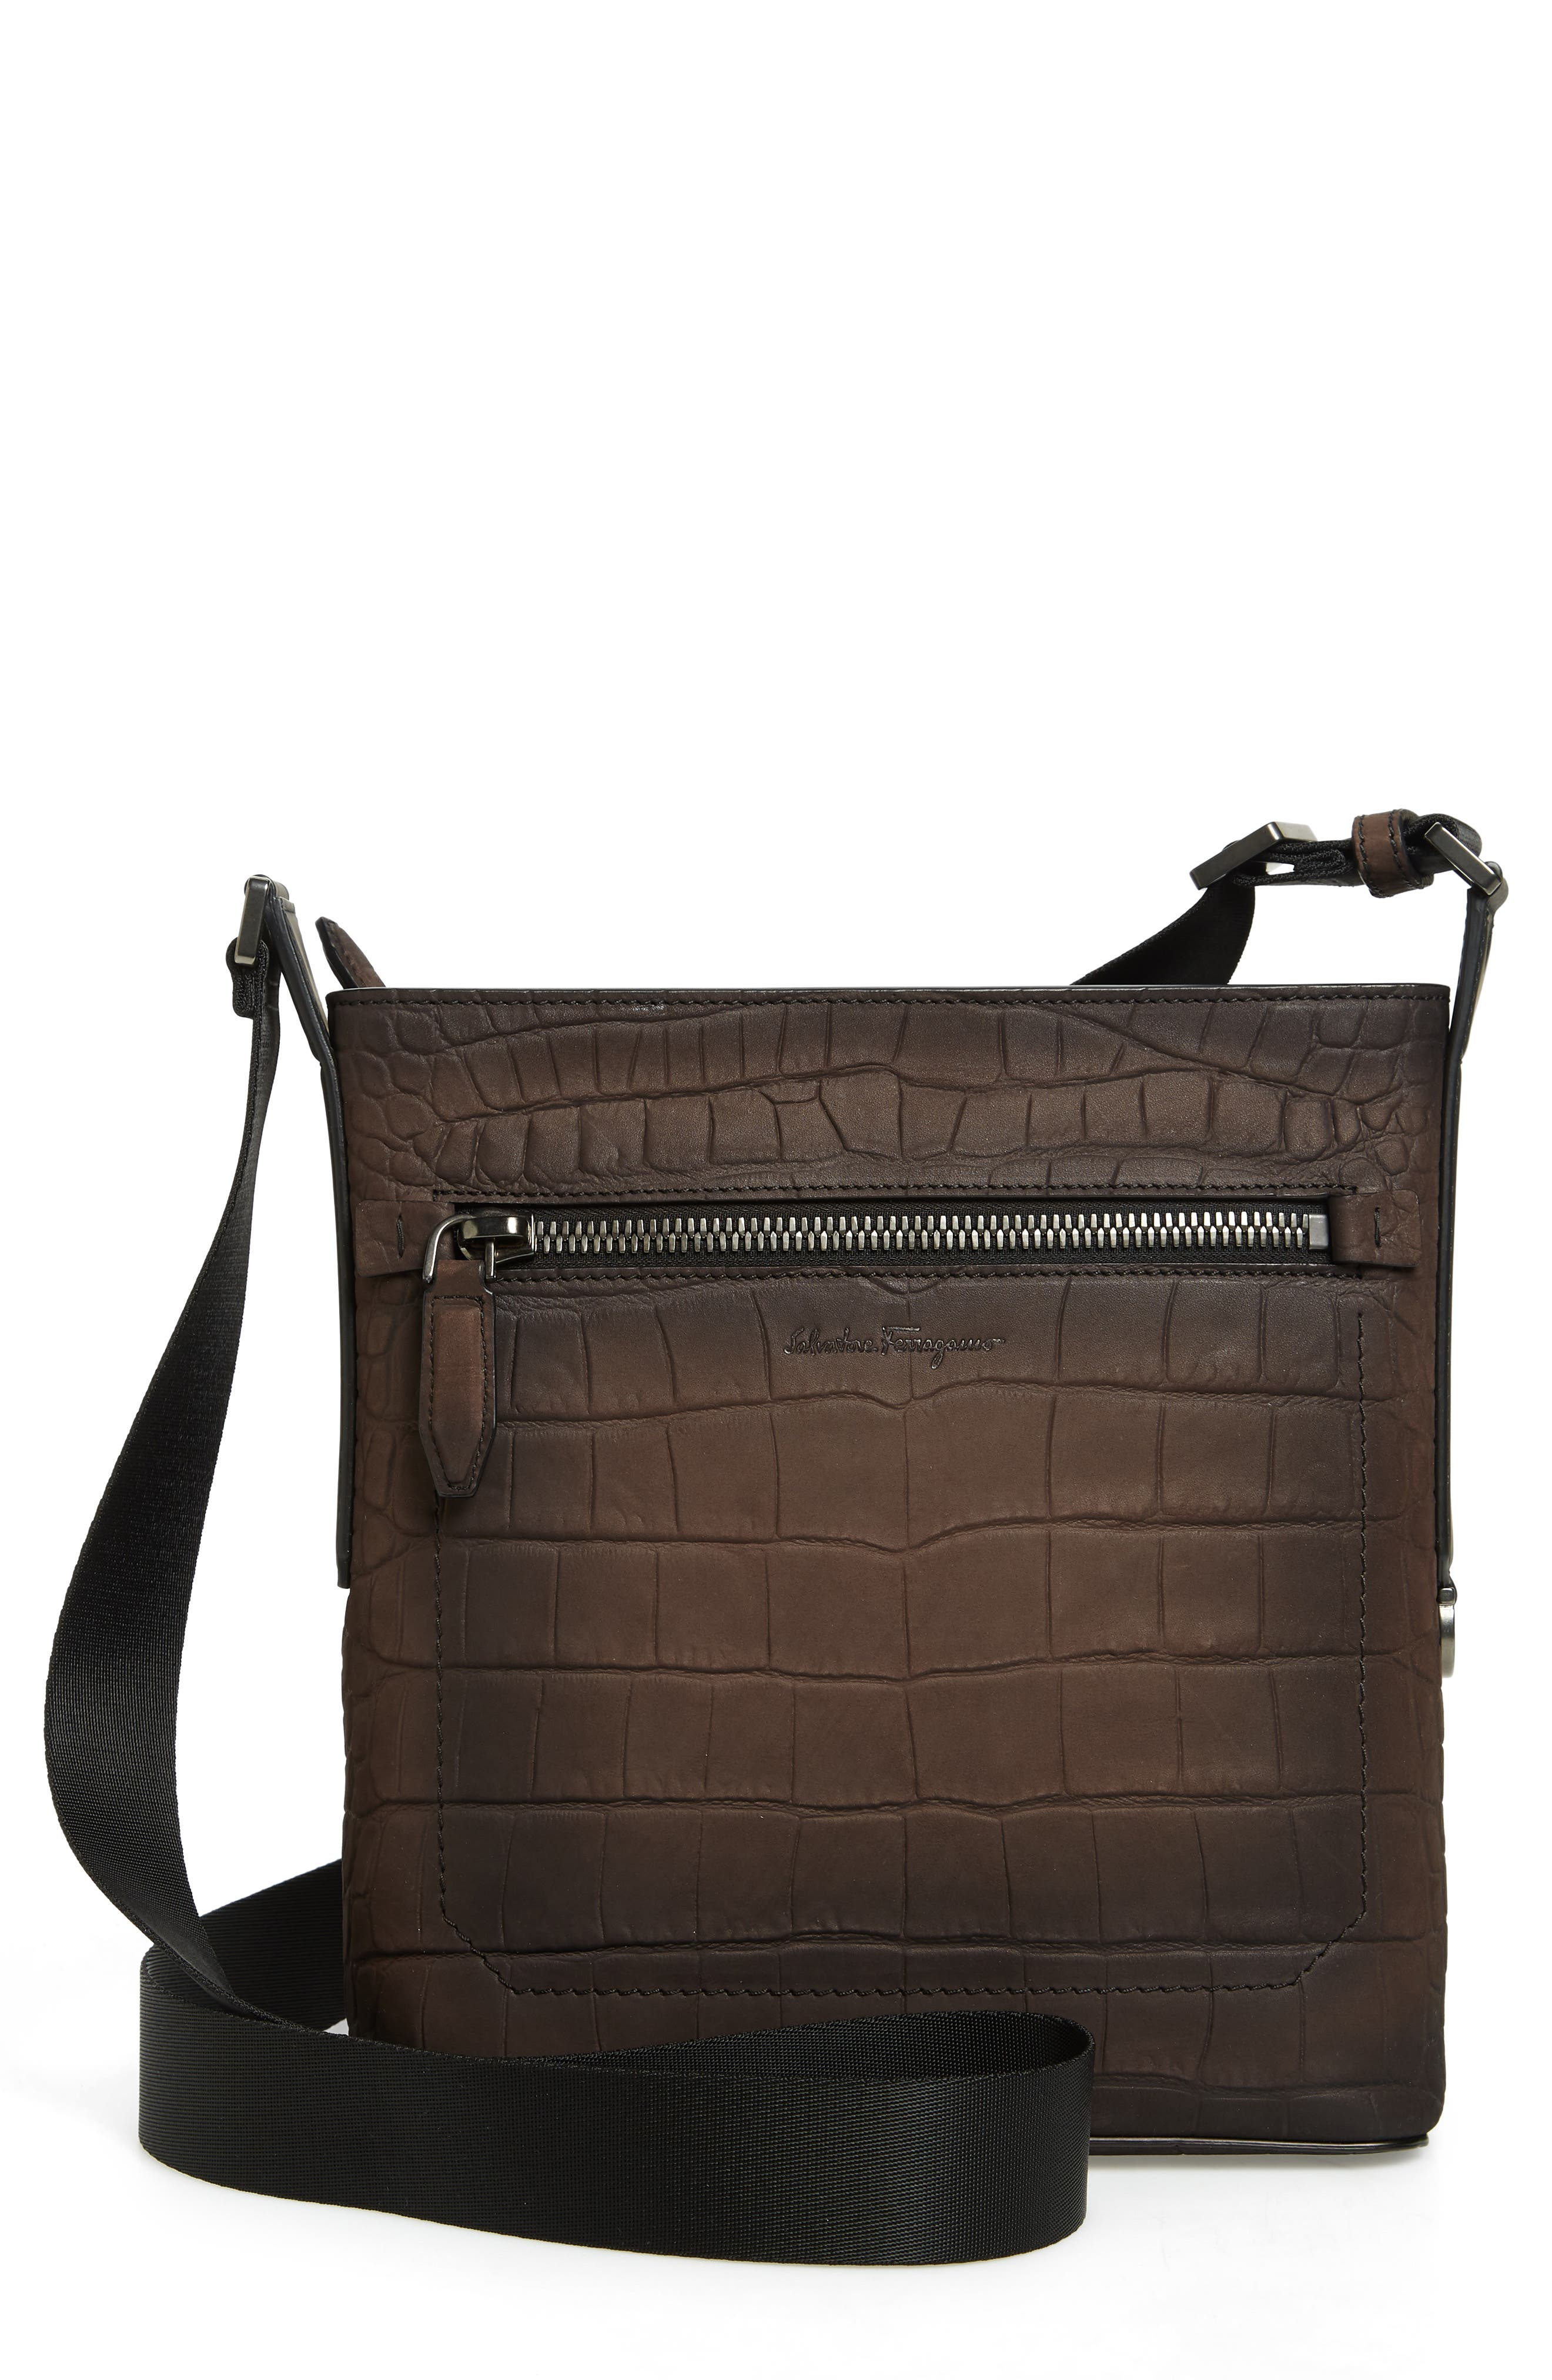 FIRENZE LEATHER CROSSBODY BAG - BROWN